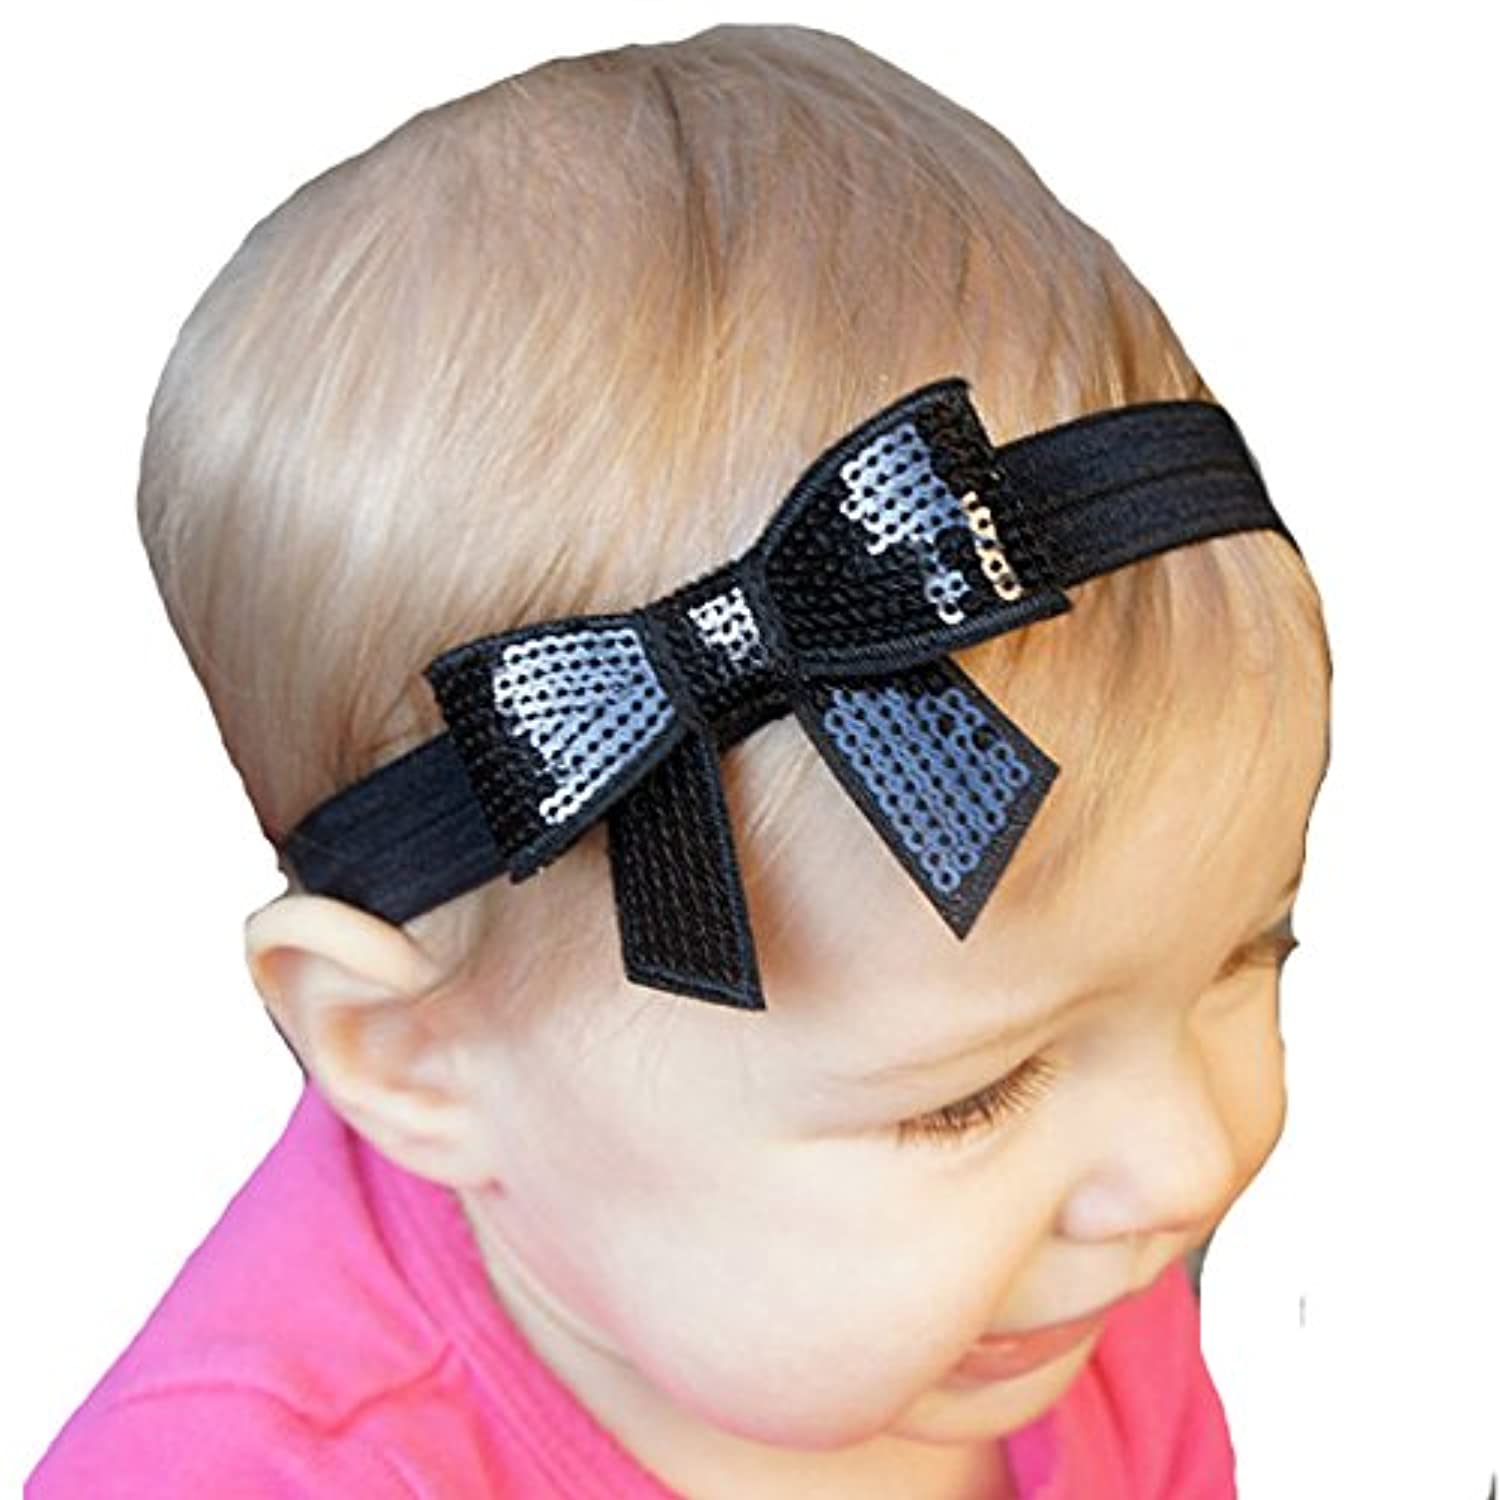 miugle Baby Girlブラックヘッドバンドwith Bows